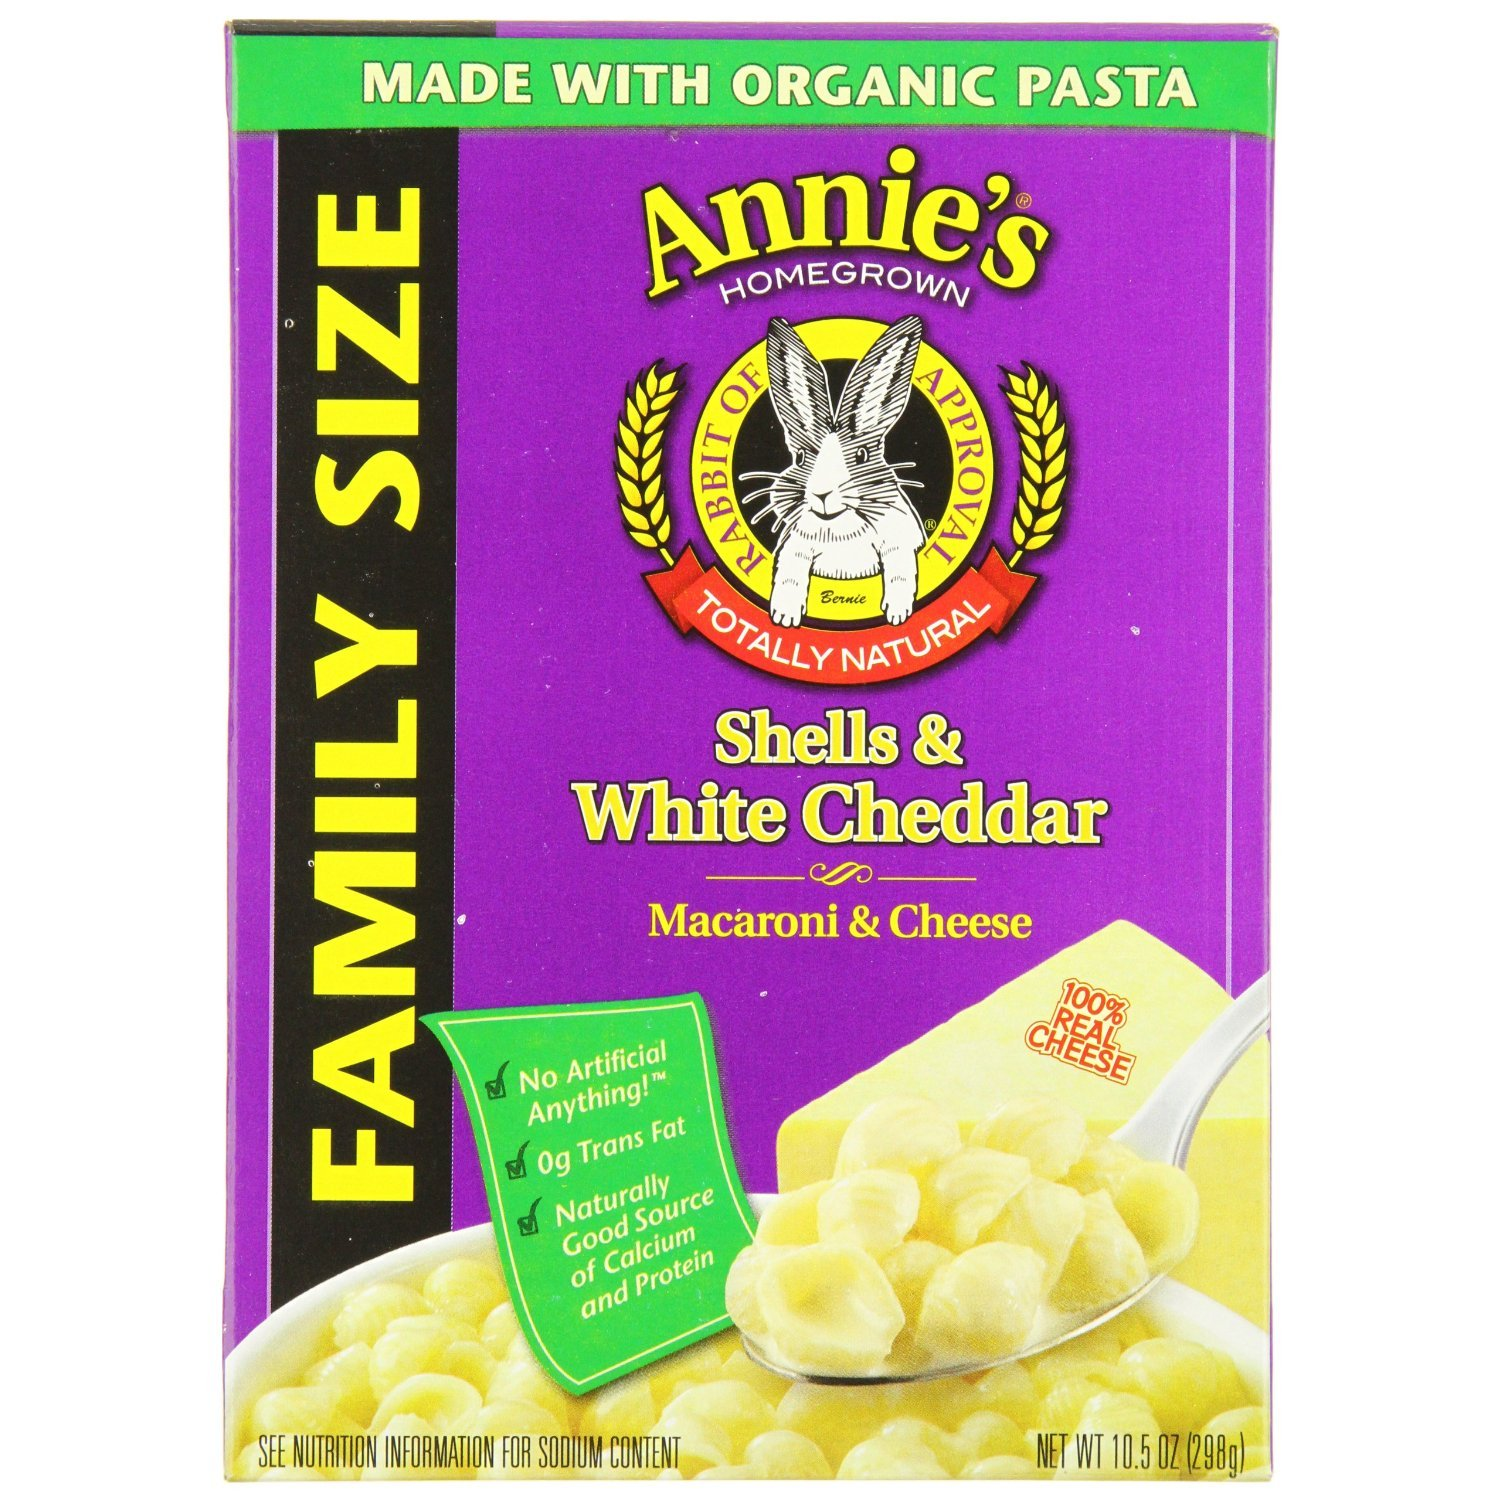 Annie's Homegrown Family-Size Shells & White Cheddar Mac & Cheese 10.5 Ounce by Annies Homegrown